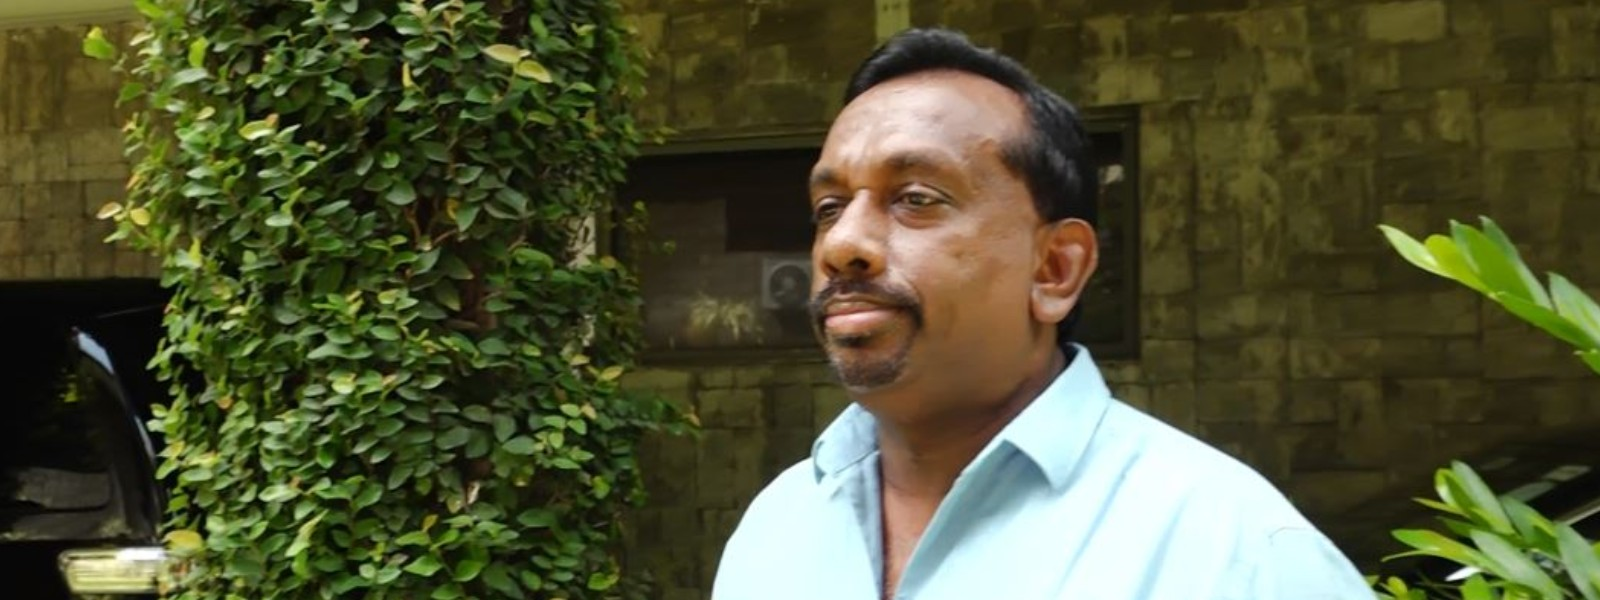 'I can sleep in peace when Ranil Wickremesinghe is in jail,' – Mahindananda